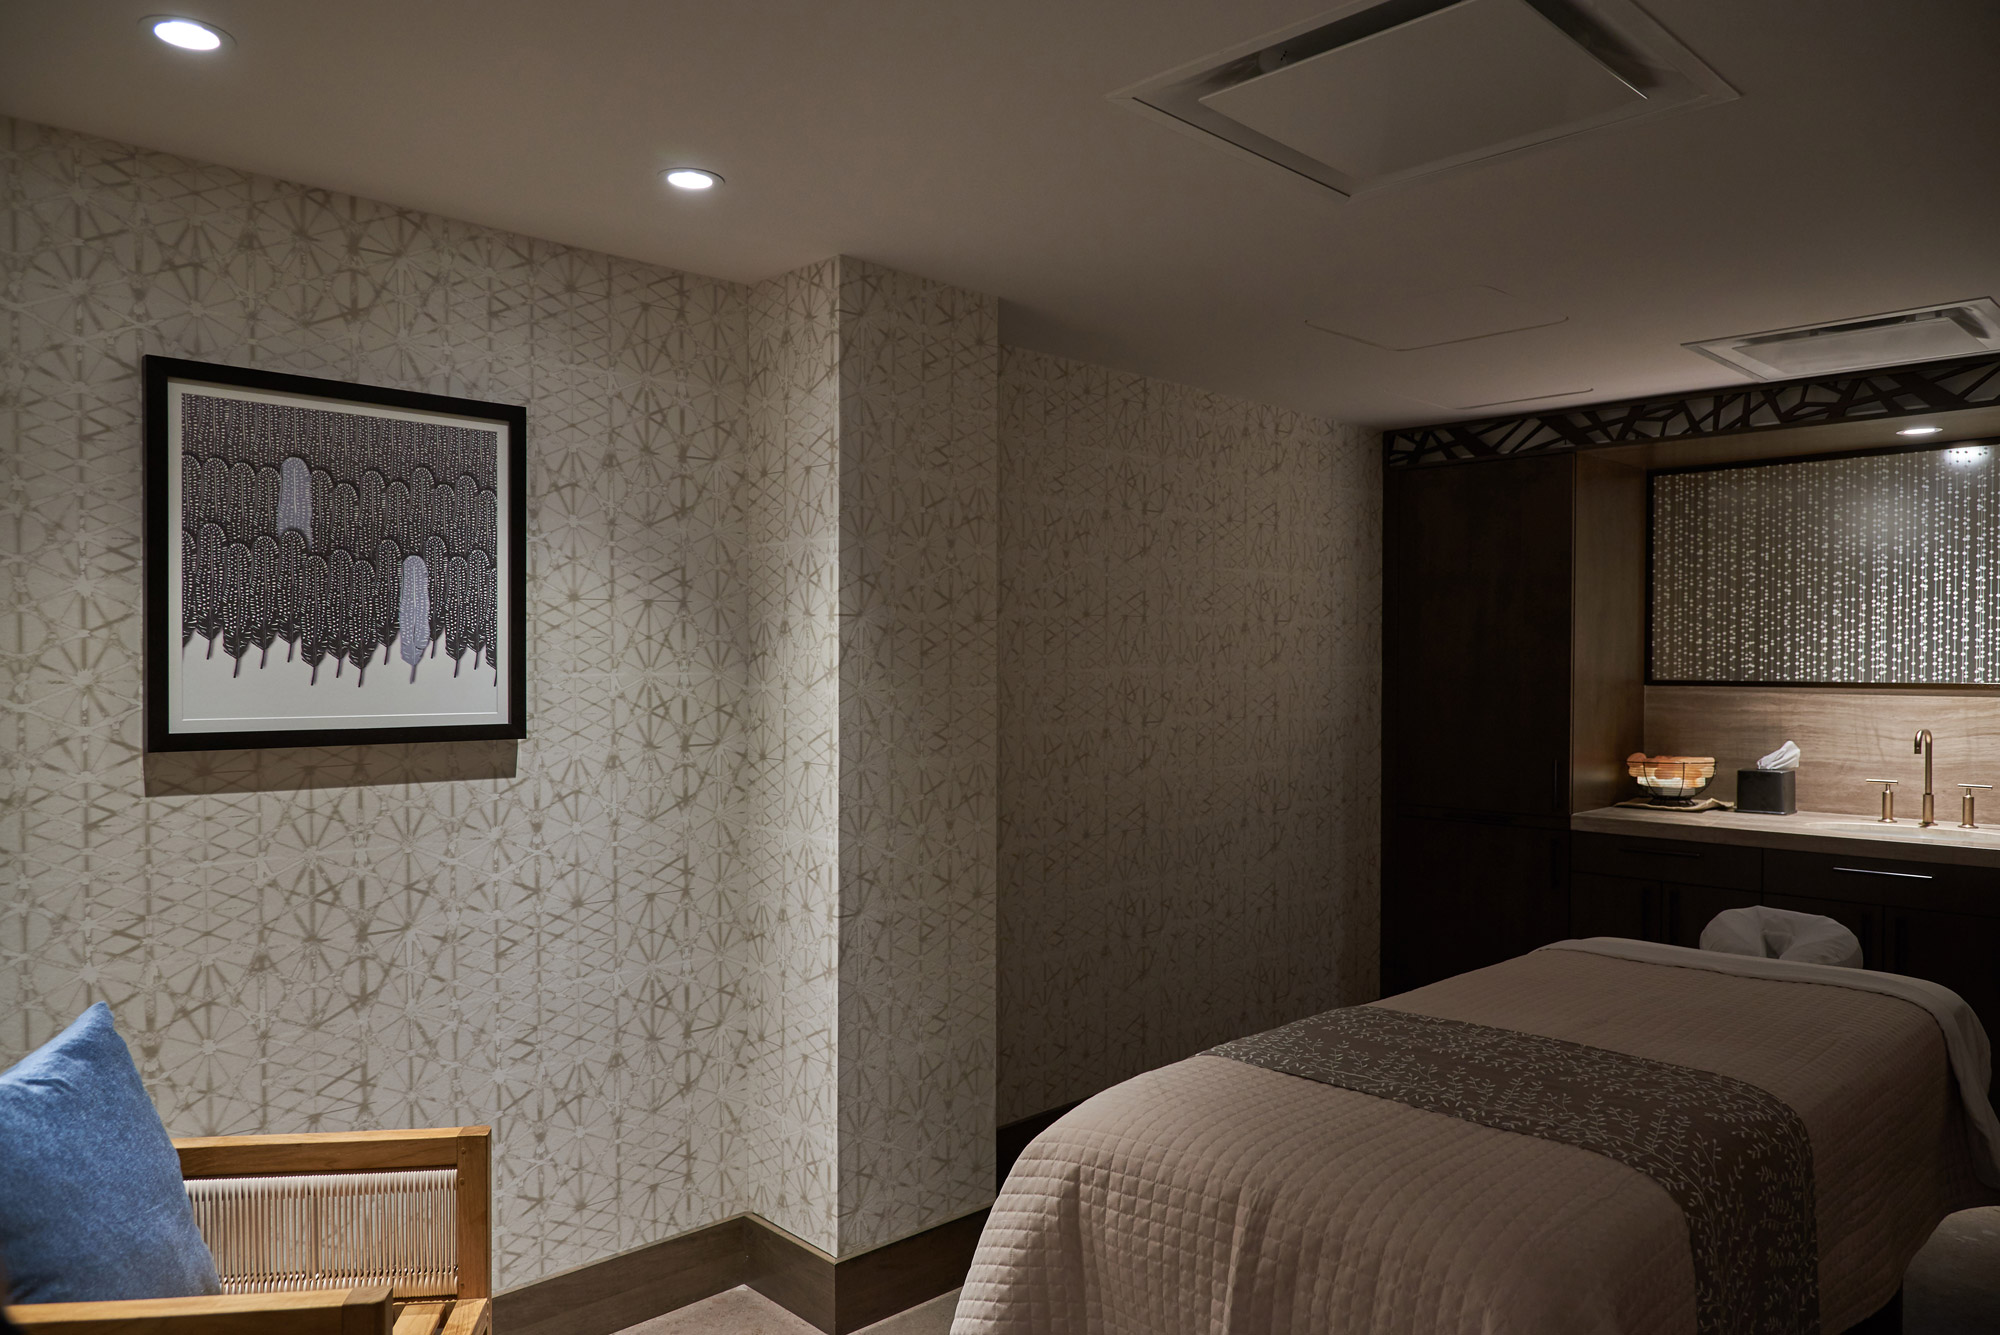 HOTEL TALISA, VAIL - Curated by Indiewalls